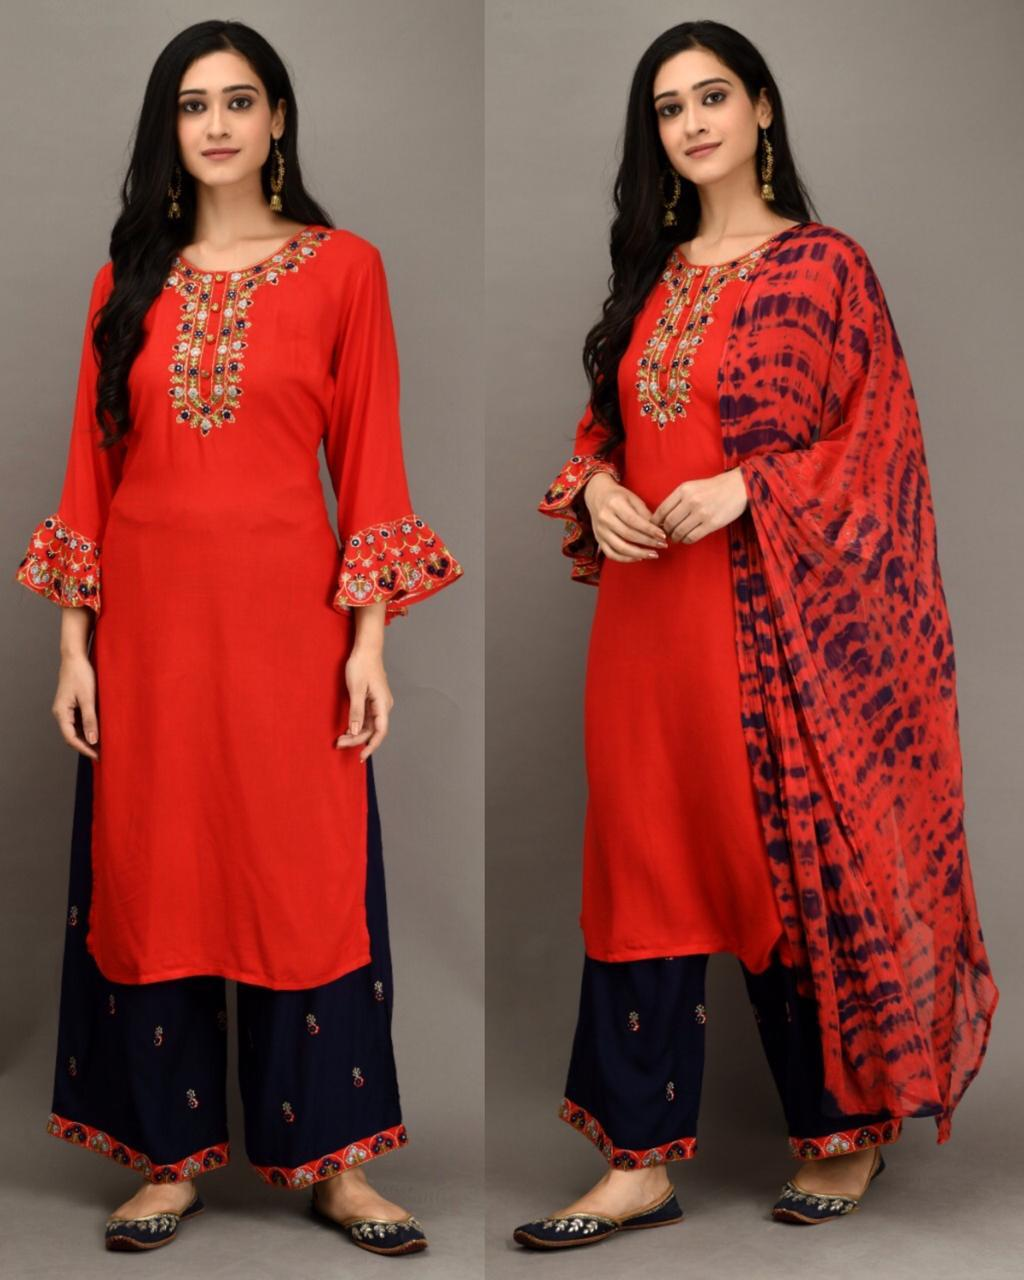 Red Cotton Bell Sleeve Kurti Palazzo Suits For Women Indian